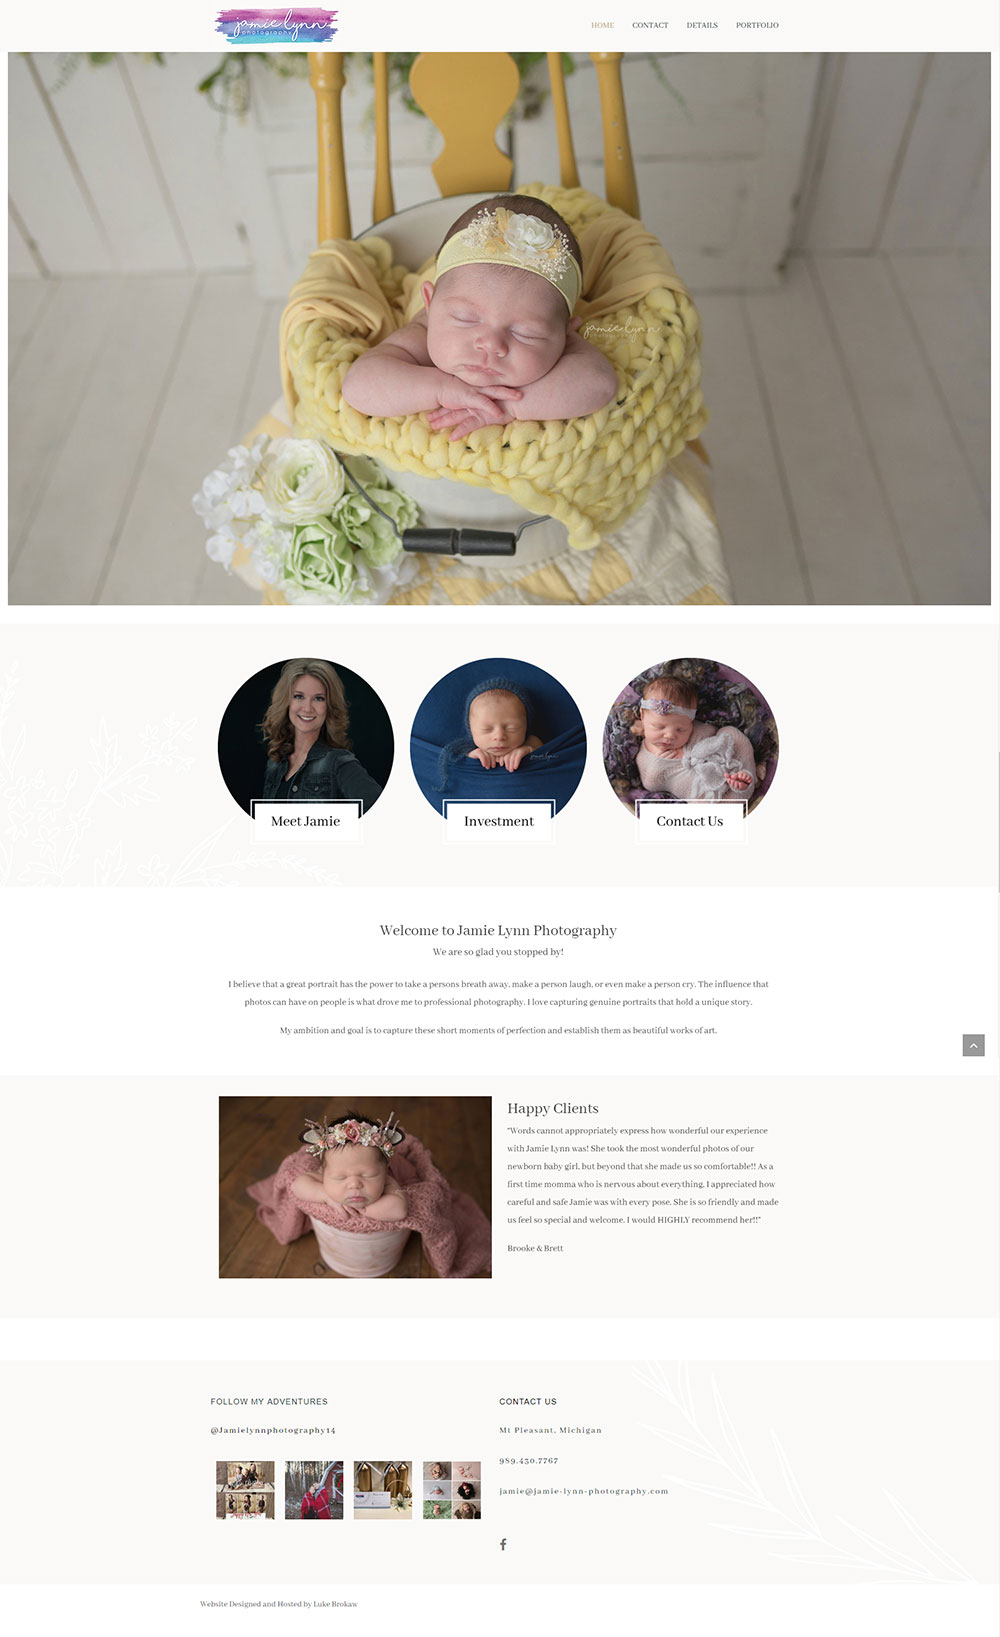 Full Home Page for Jamie Lynn Photography designed by Luke Brokaw